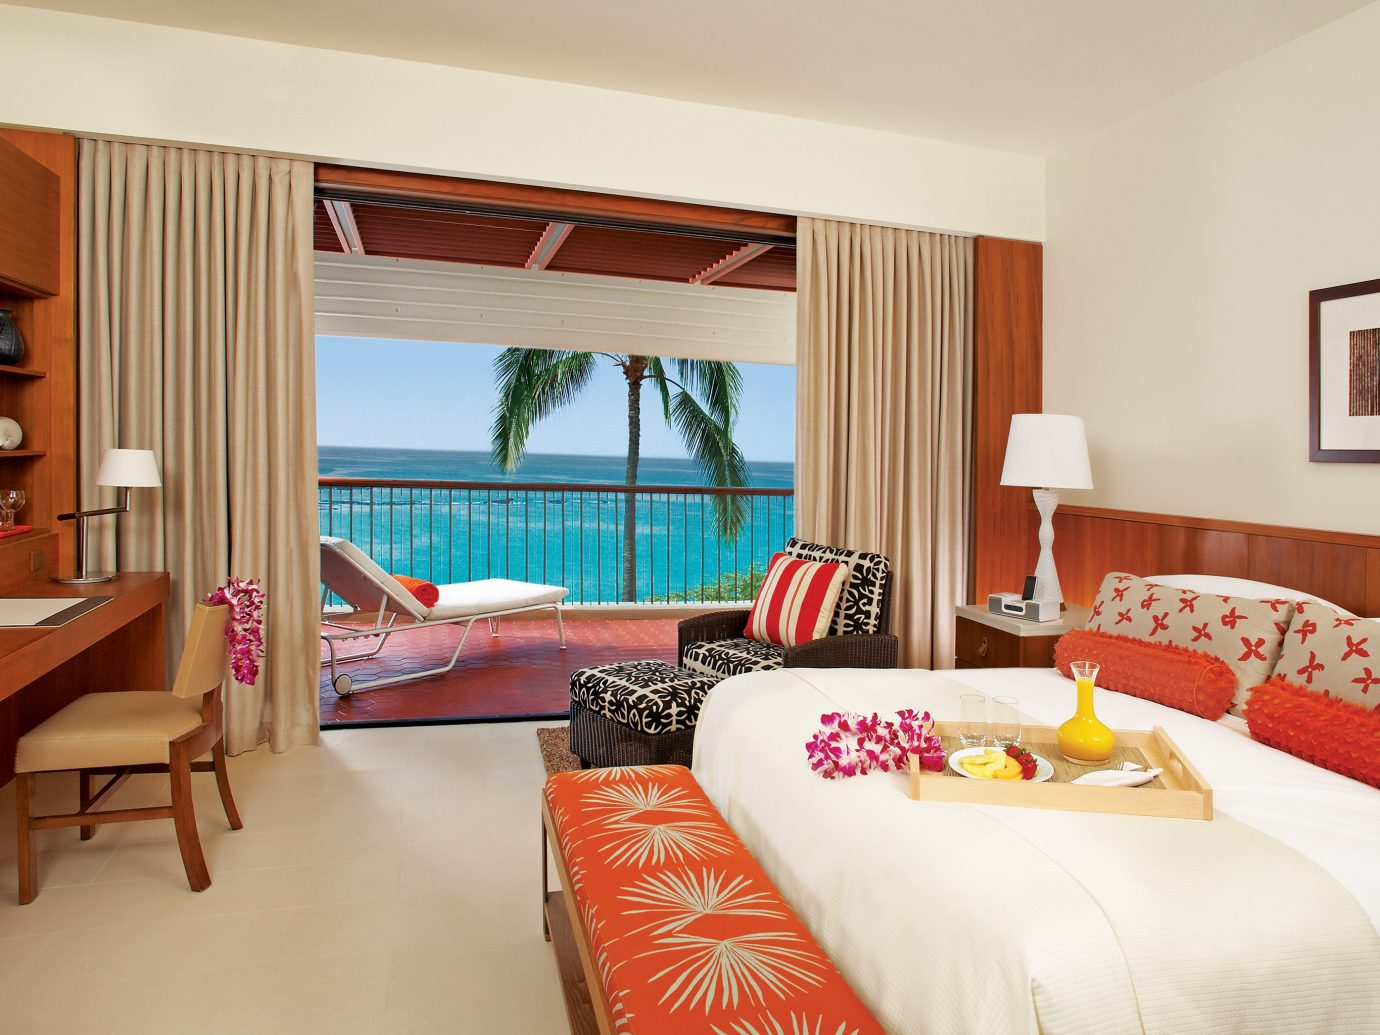 Balcony Bedroom Hotels Living Resort Scenic views indoor sofa floor room wall table ceiling window property Suite estate cottage furniture real estate interior design hotel home Villa living room apartment nice decorated flat